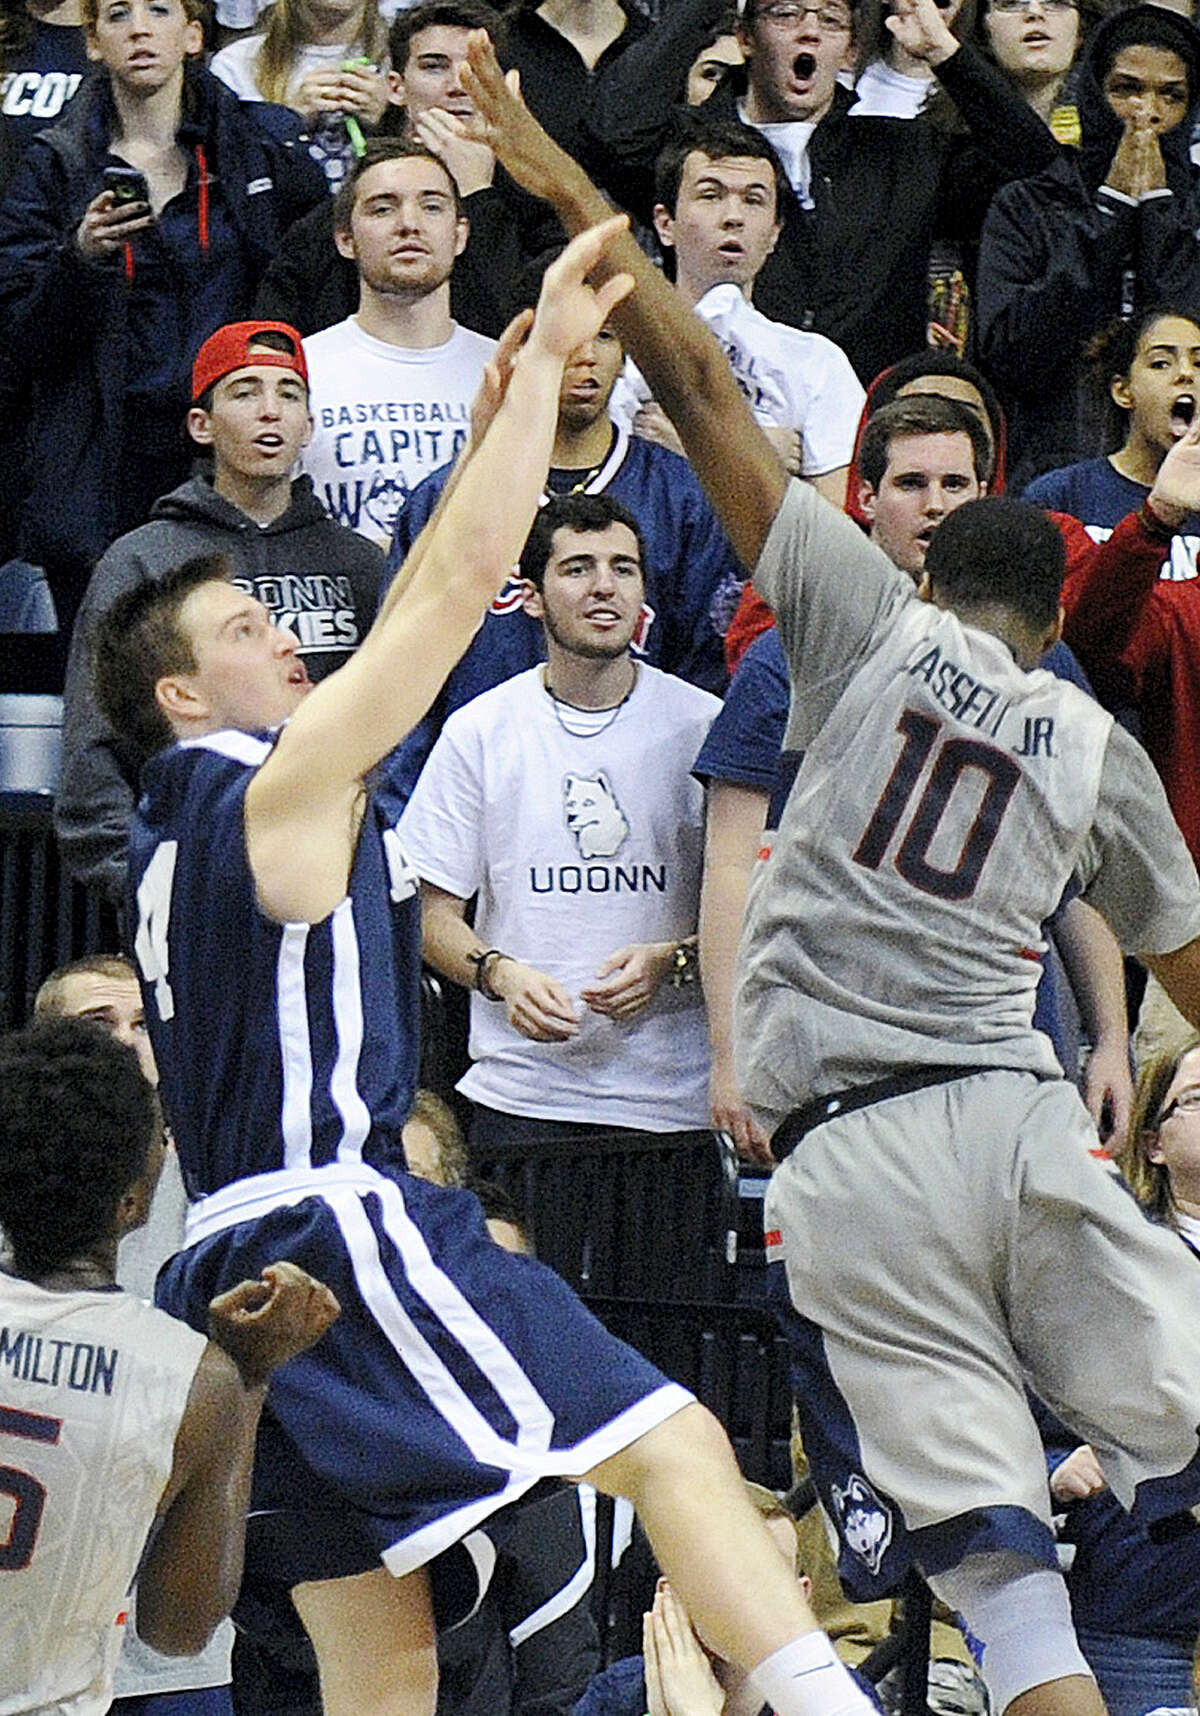 In this Dec. 5, 2014, photo, Yale's Jack Montague, left, shoots a game-winning three-point shot over Connecticut's Sam Cassell Jr. (10) during Yale's 45-44 upset victory in an NCAA college basketball game in Storrs.